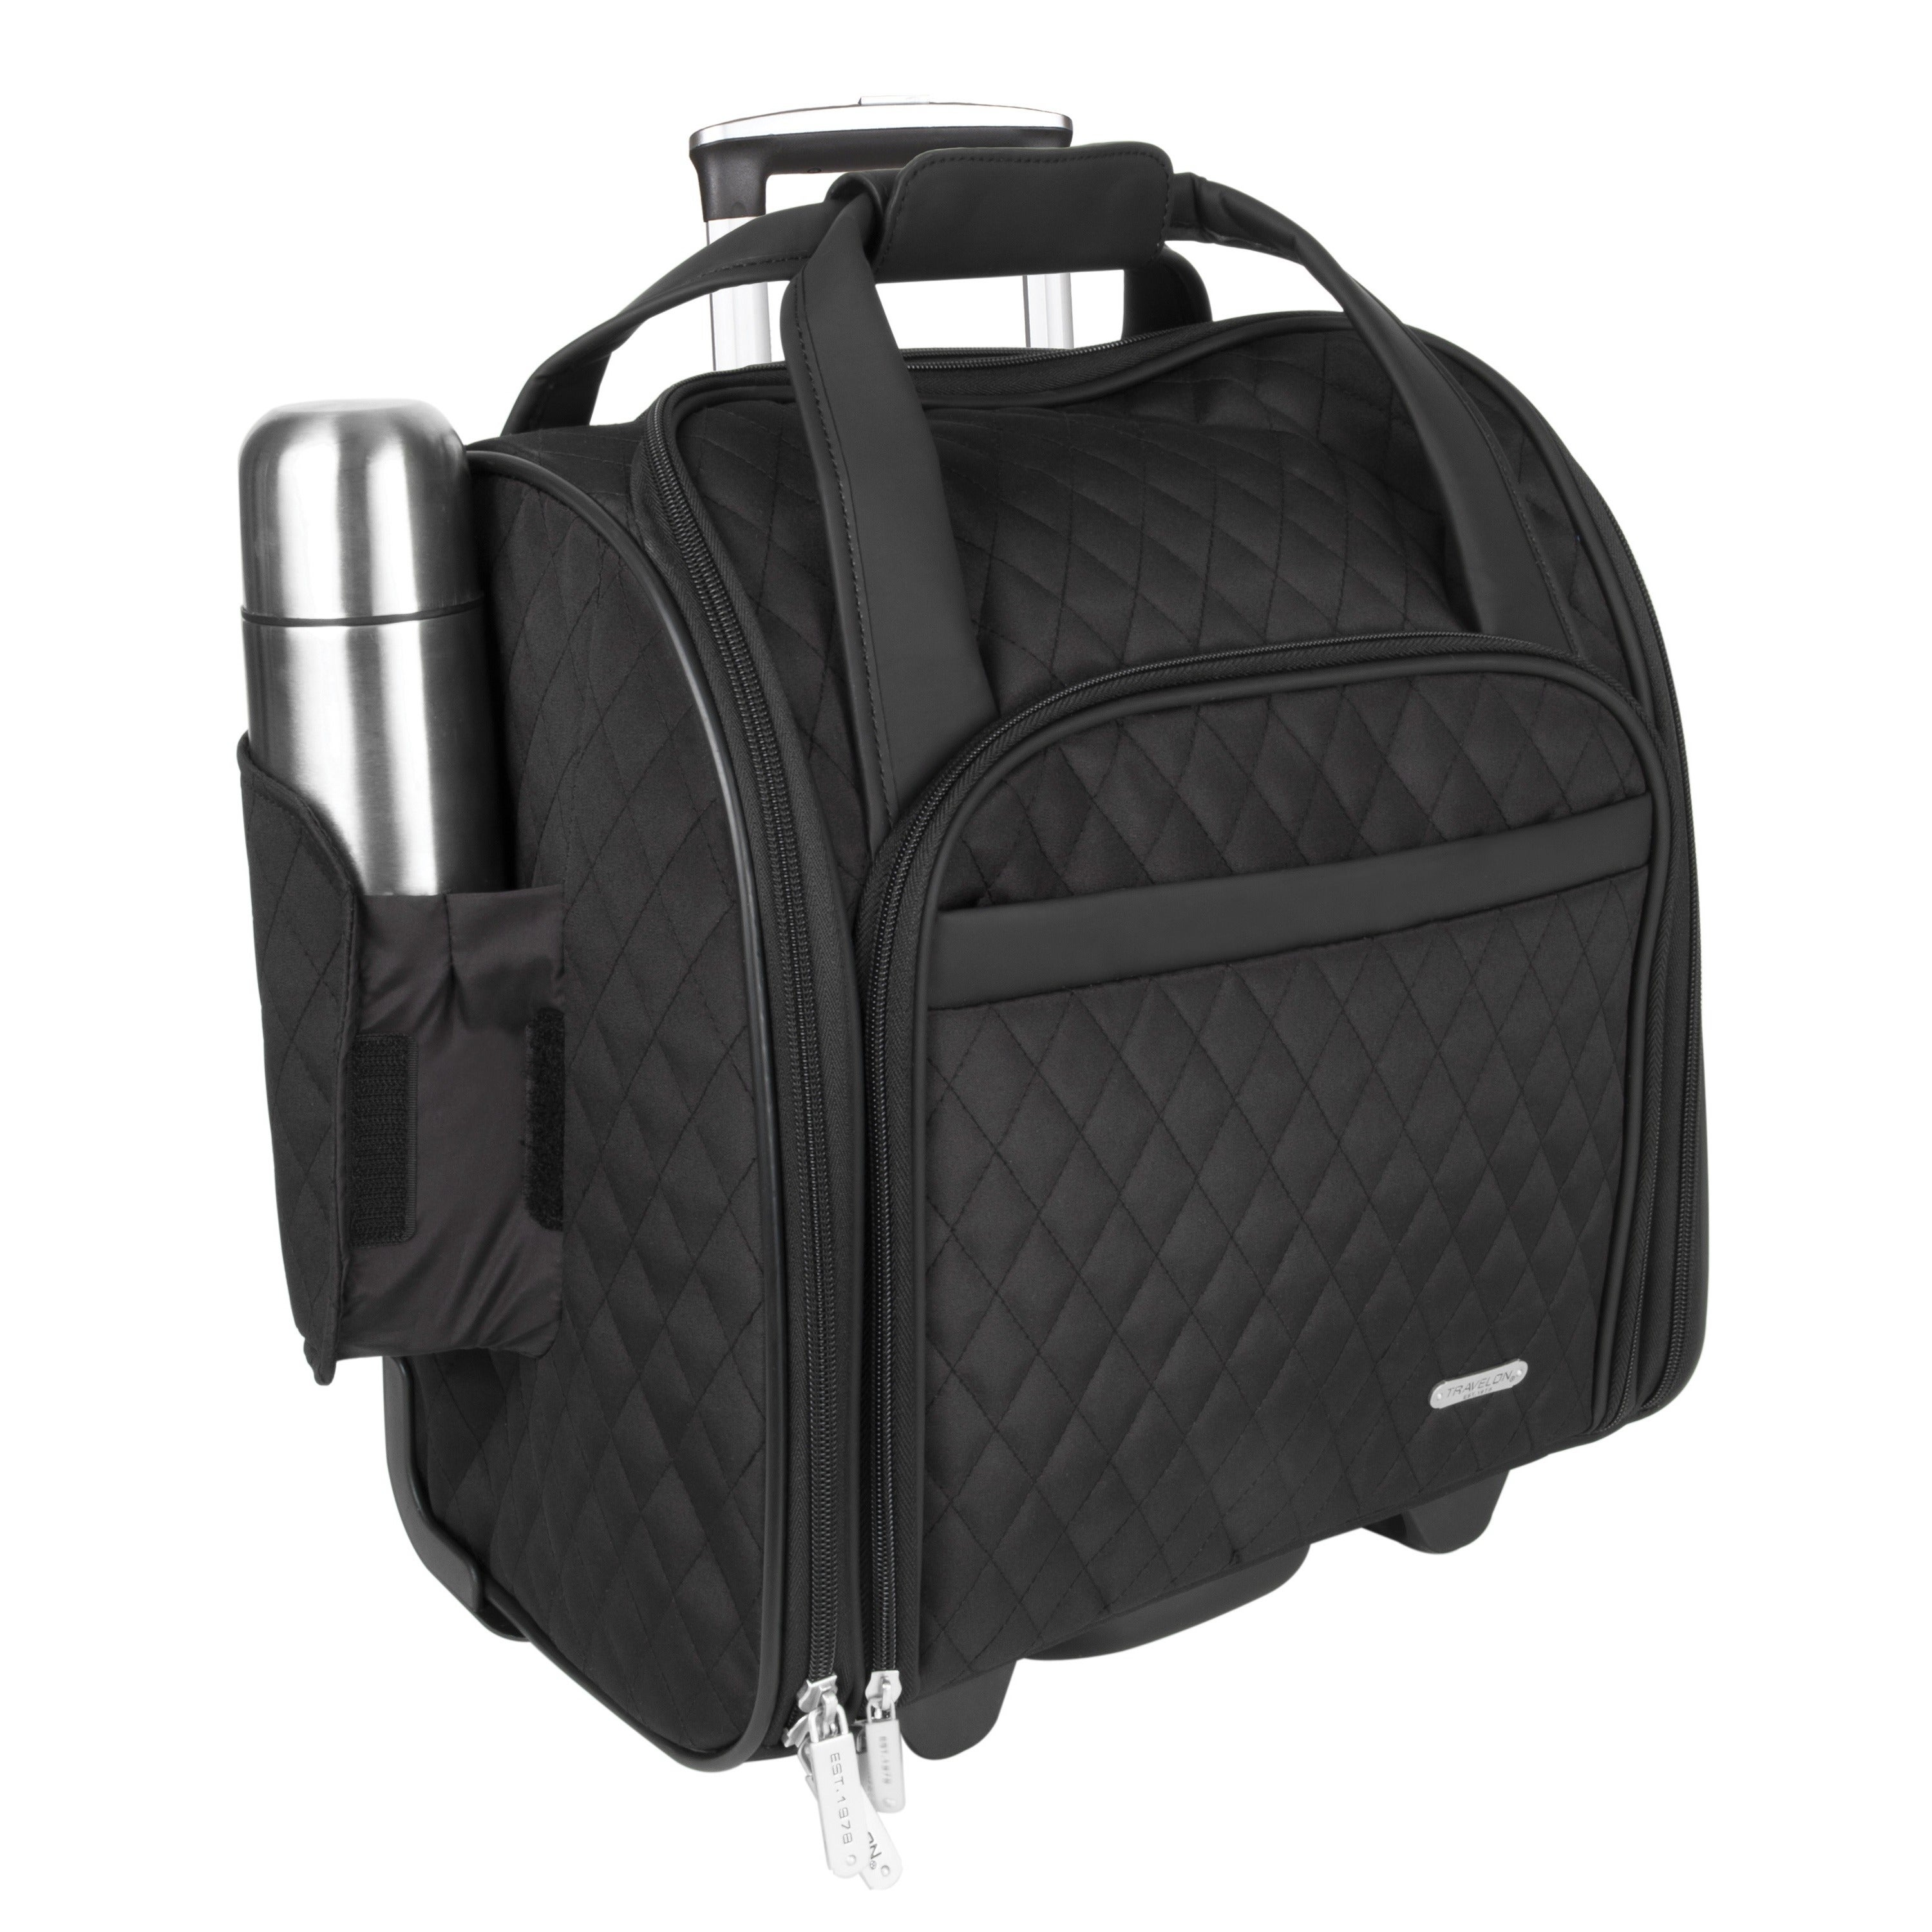 Shop Travelon Wheeled Underseat Carry-on with Back-up Bag - Free Shipping Today - Overstock.com - 3958054